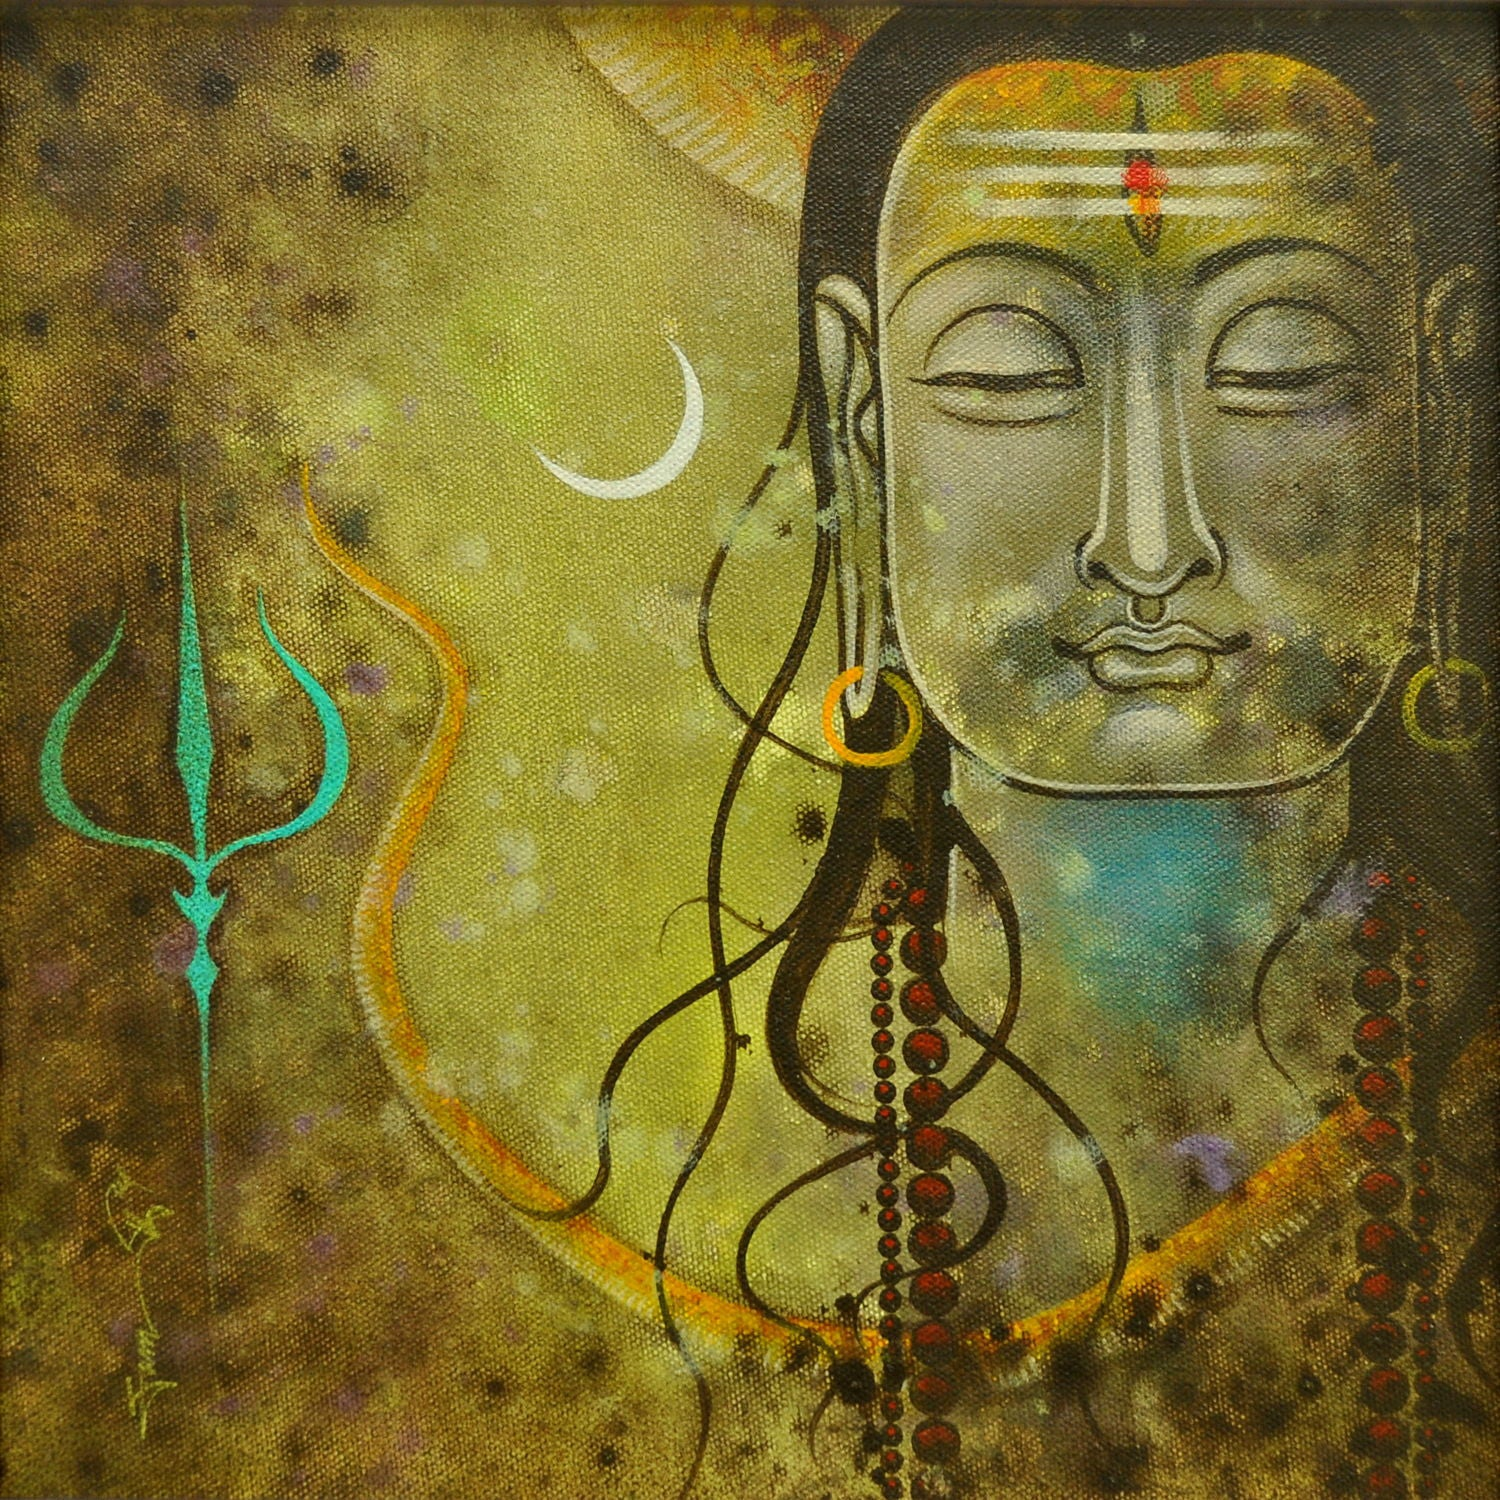 Shiva Paintings | Buy Posters, Frames, Canvas, Digital Art & Large Size Prints